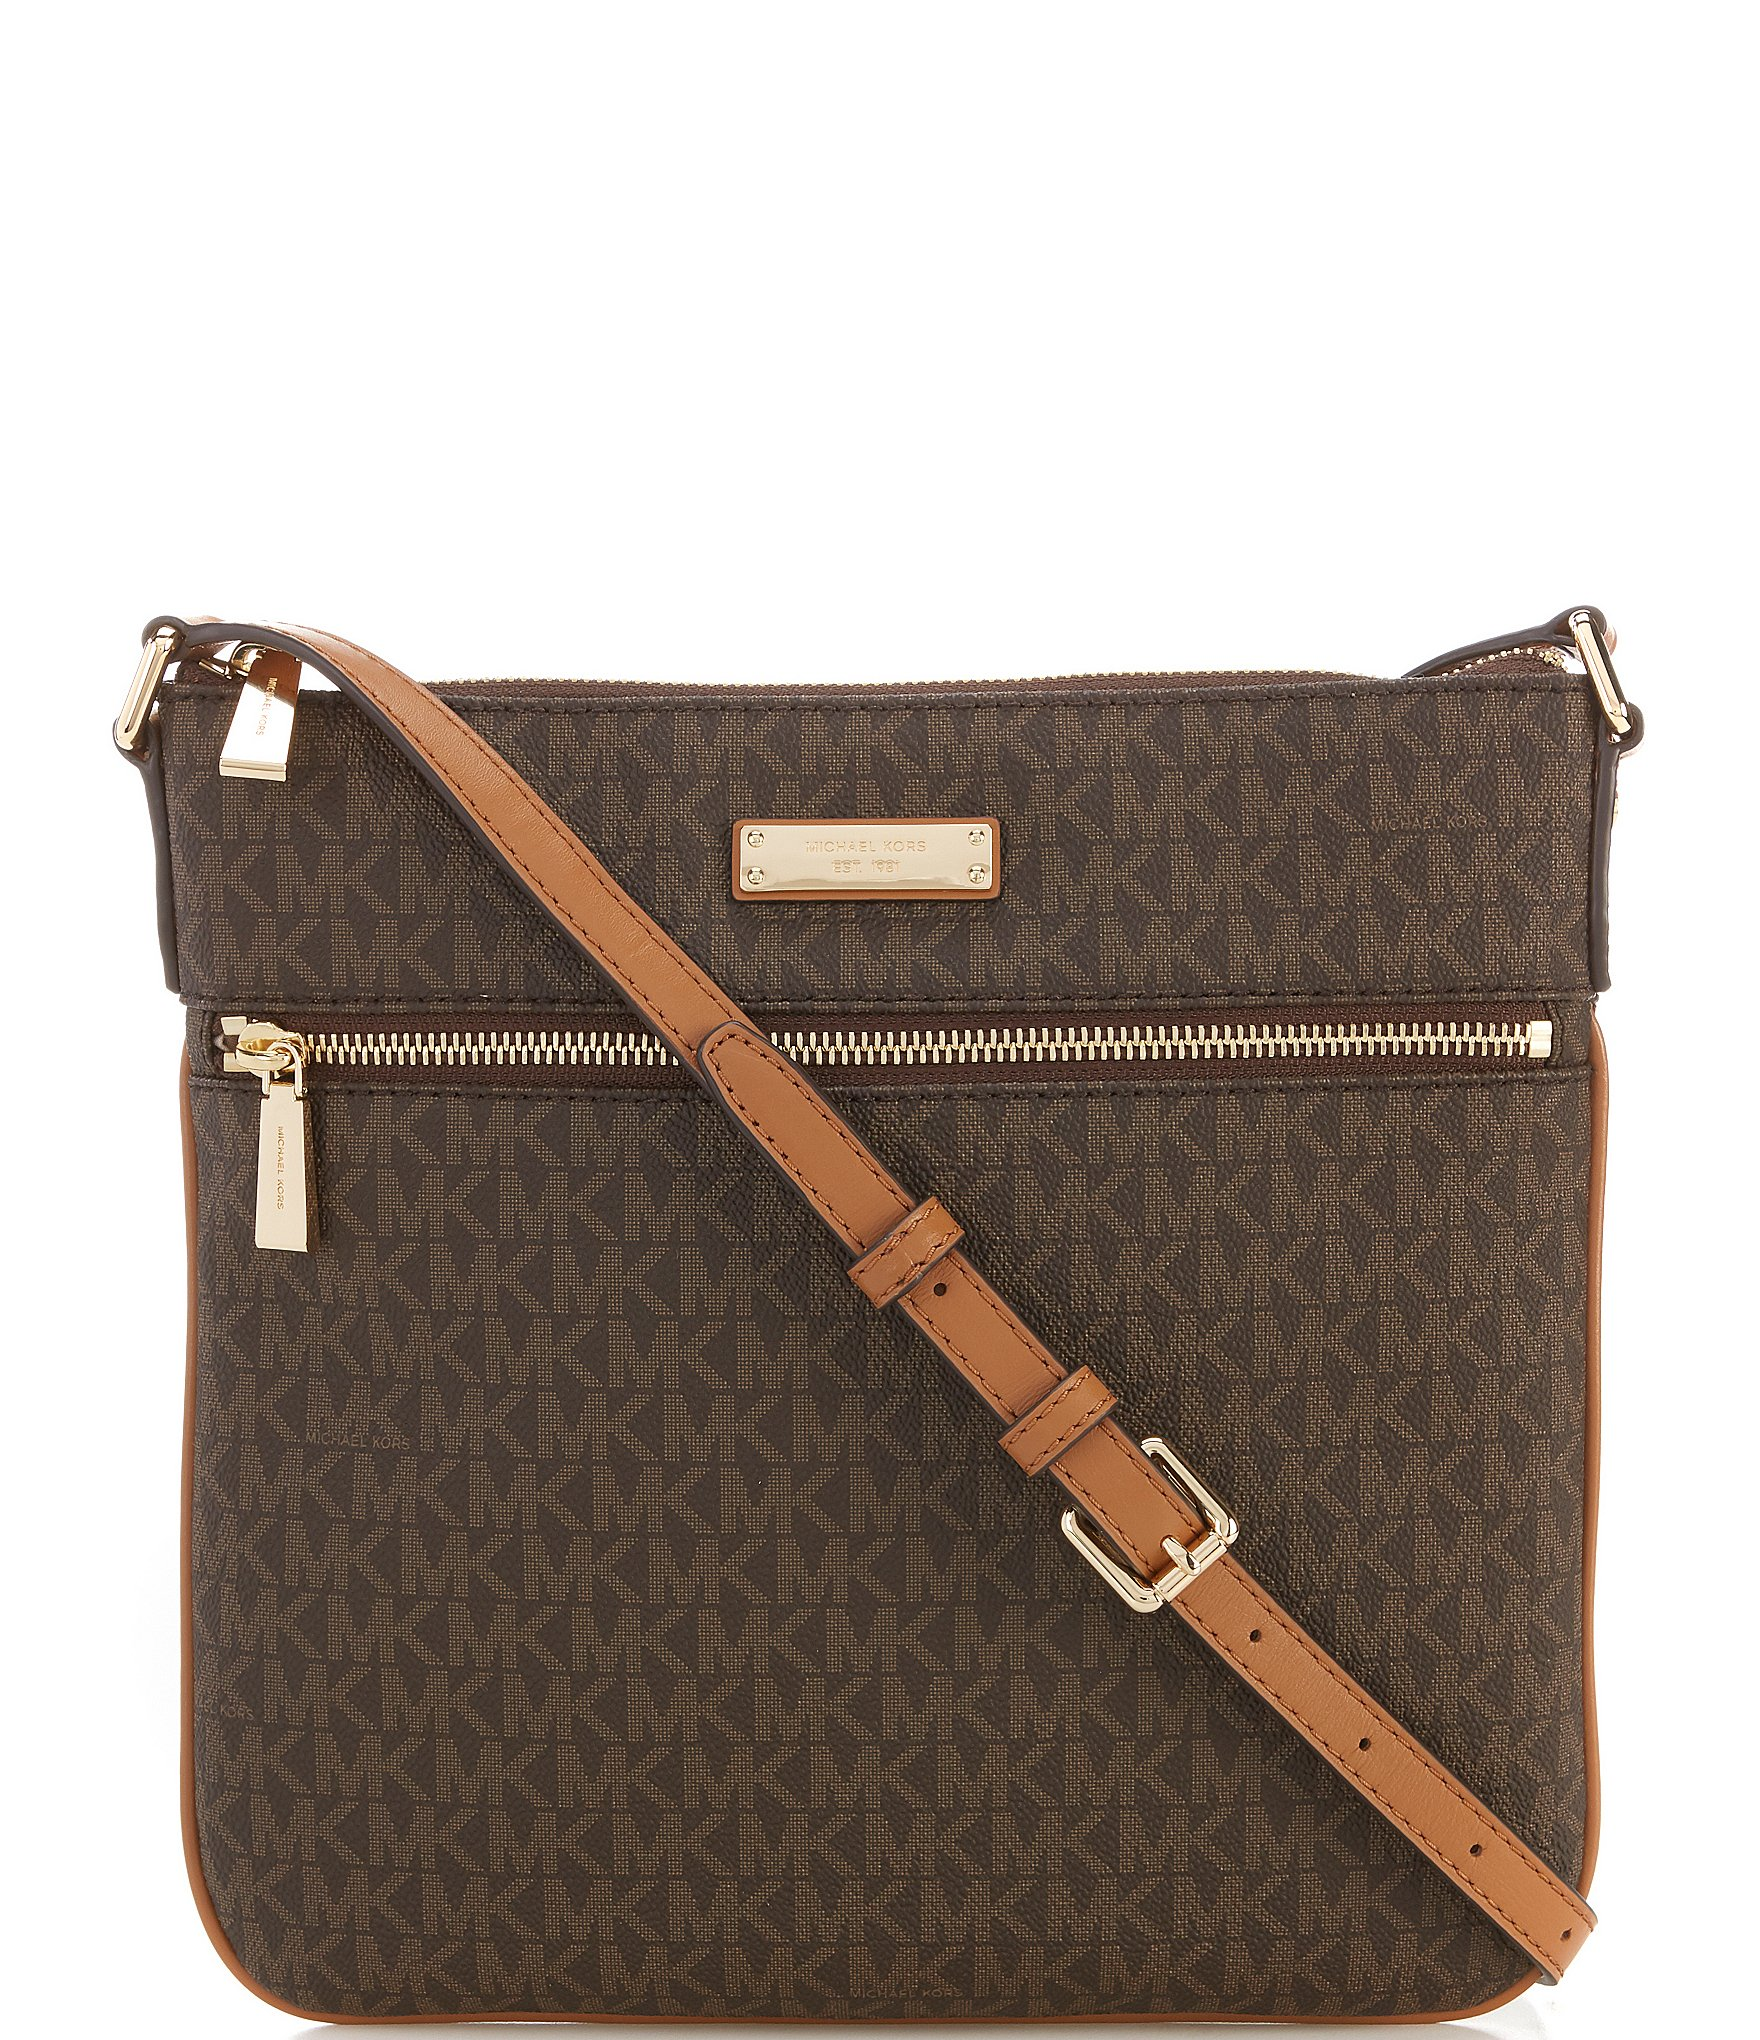 Michael Kors Laukkukoru : Michael kors bedford signature flat cross body bag